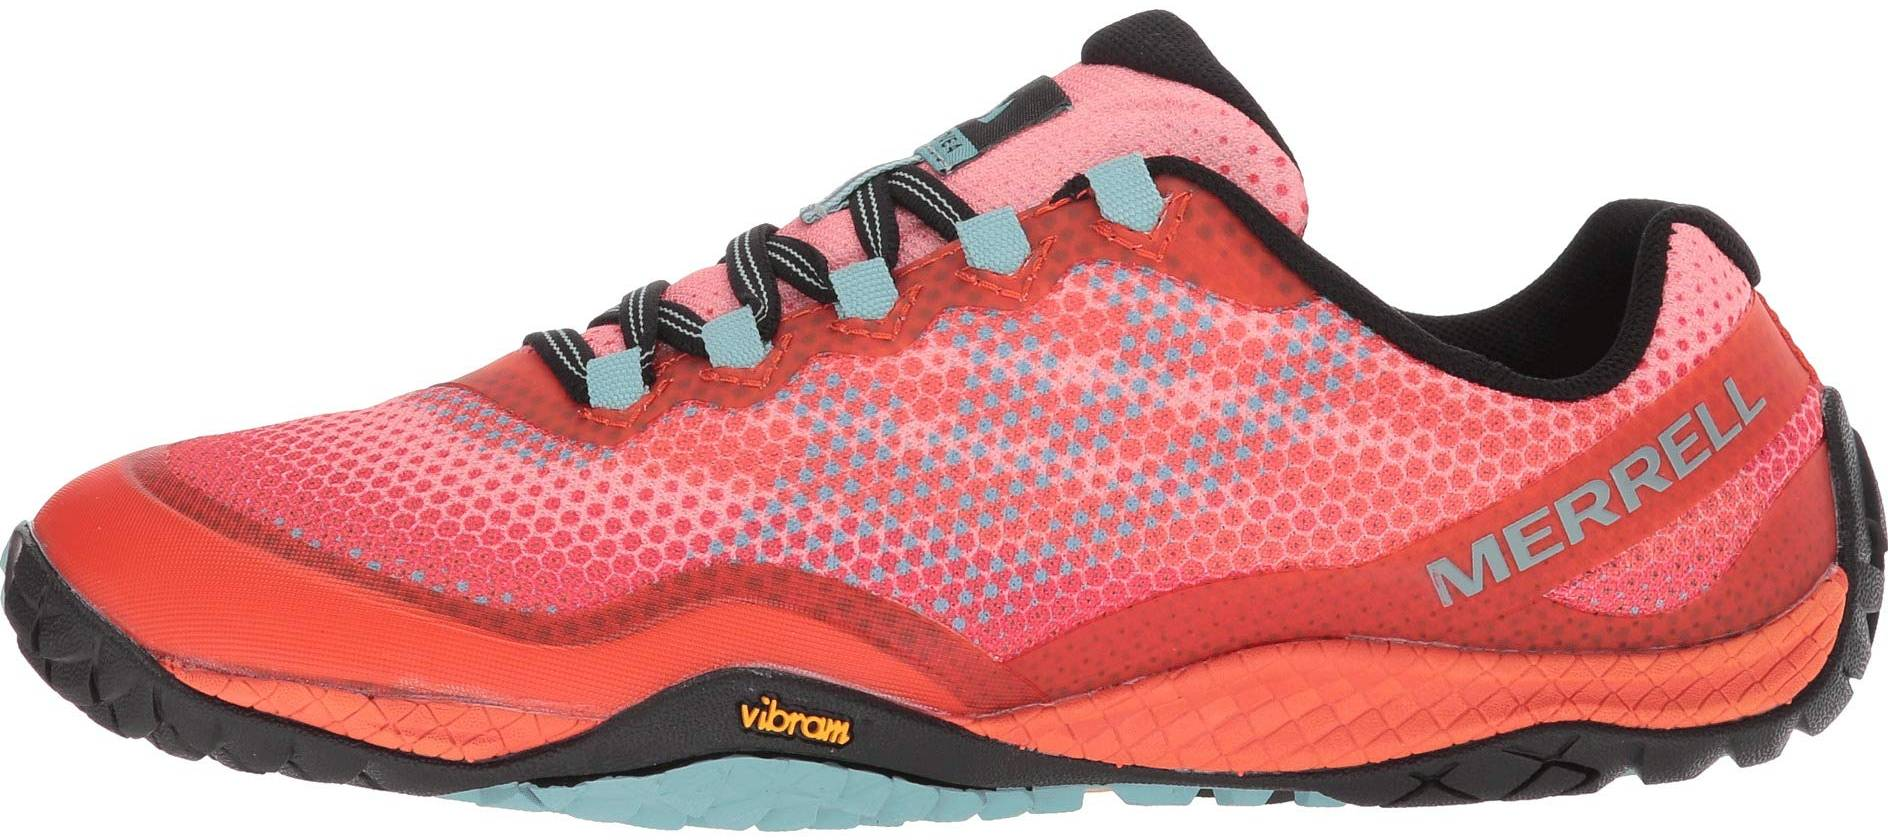 Save 50% on Merrell Trail Running Shoes